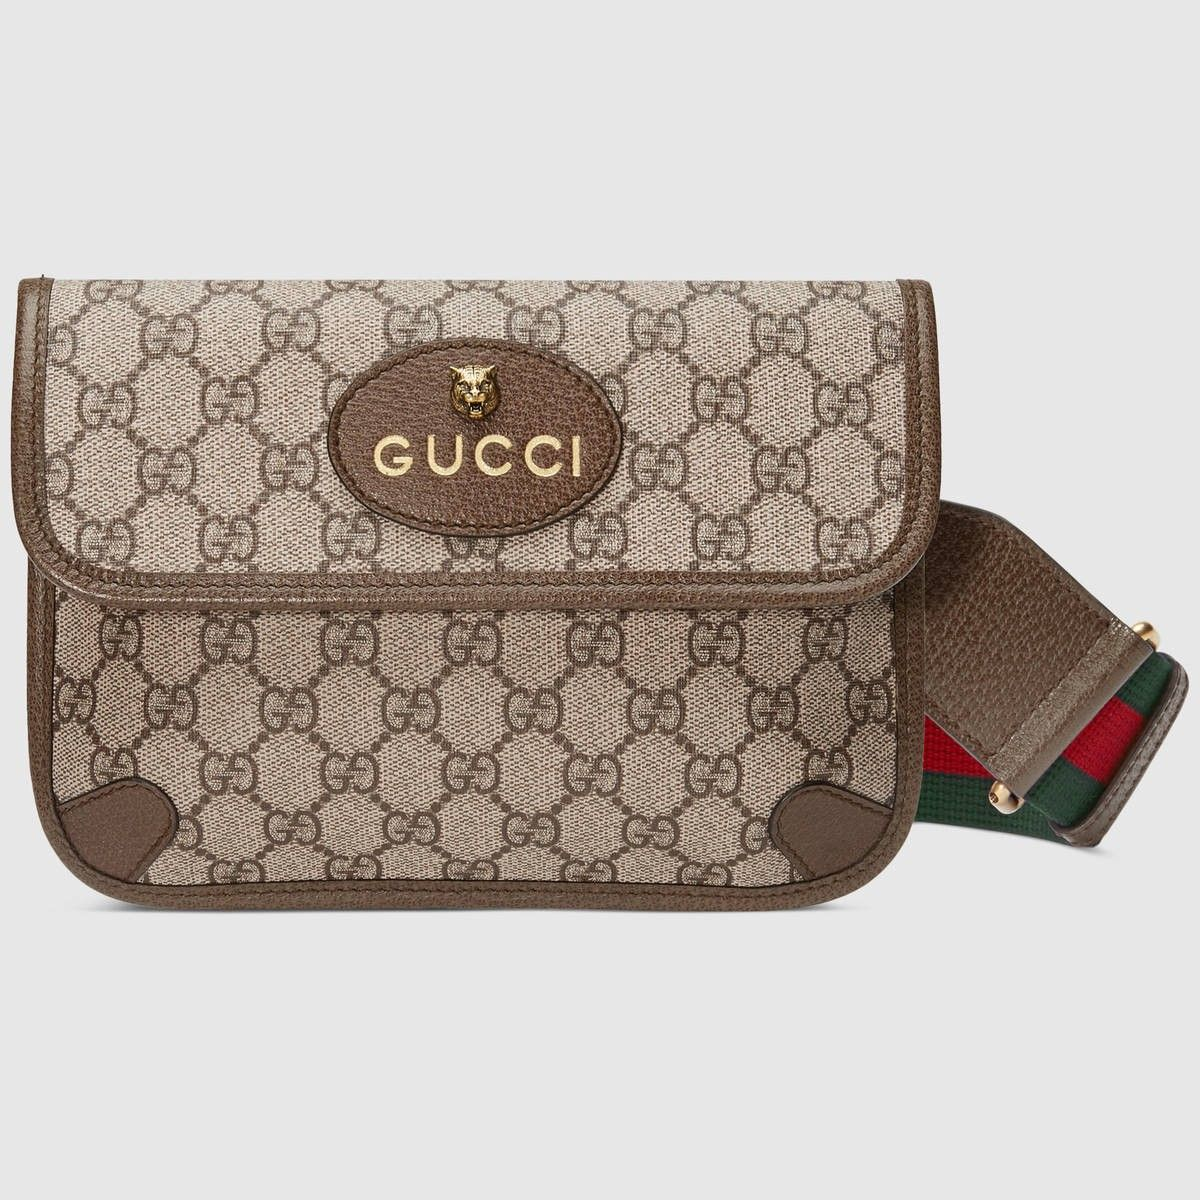 9ef5deabf2214e GUCCI GucciTotem GG Supreme messenger - GG Supreme/brown. #gucci #bags # canvas #tote #leather #lining #shoulder bags #linen #hand bags #nylon  #cotton #